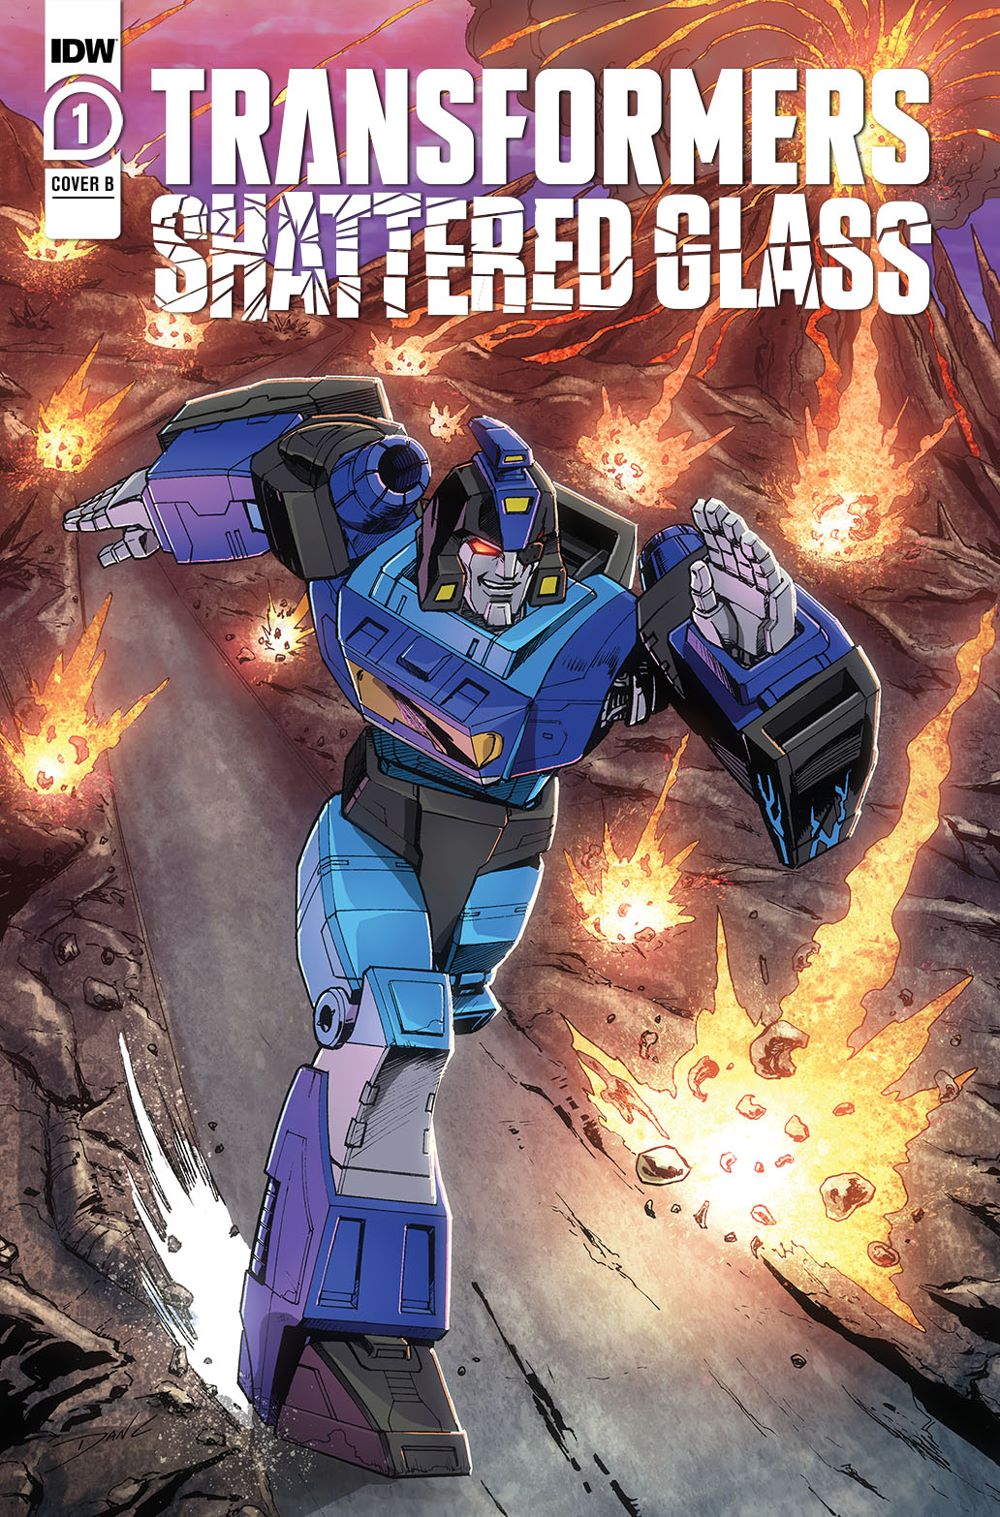 TFShatteredGlass-CvB-copy IDW Publishing August 2021 Solicitations